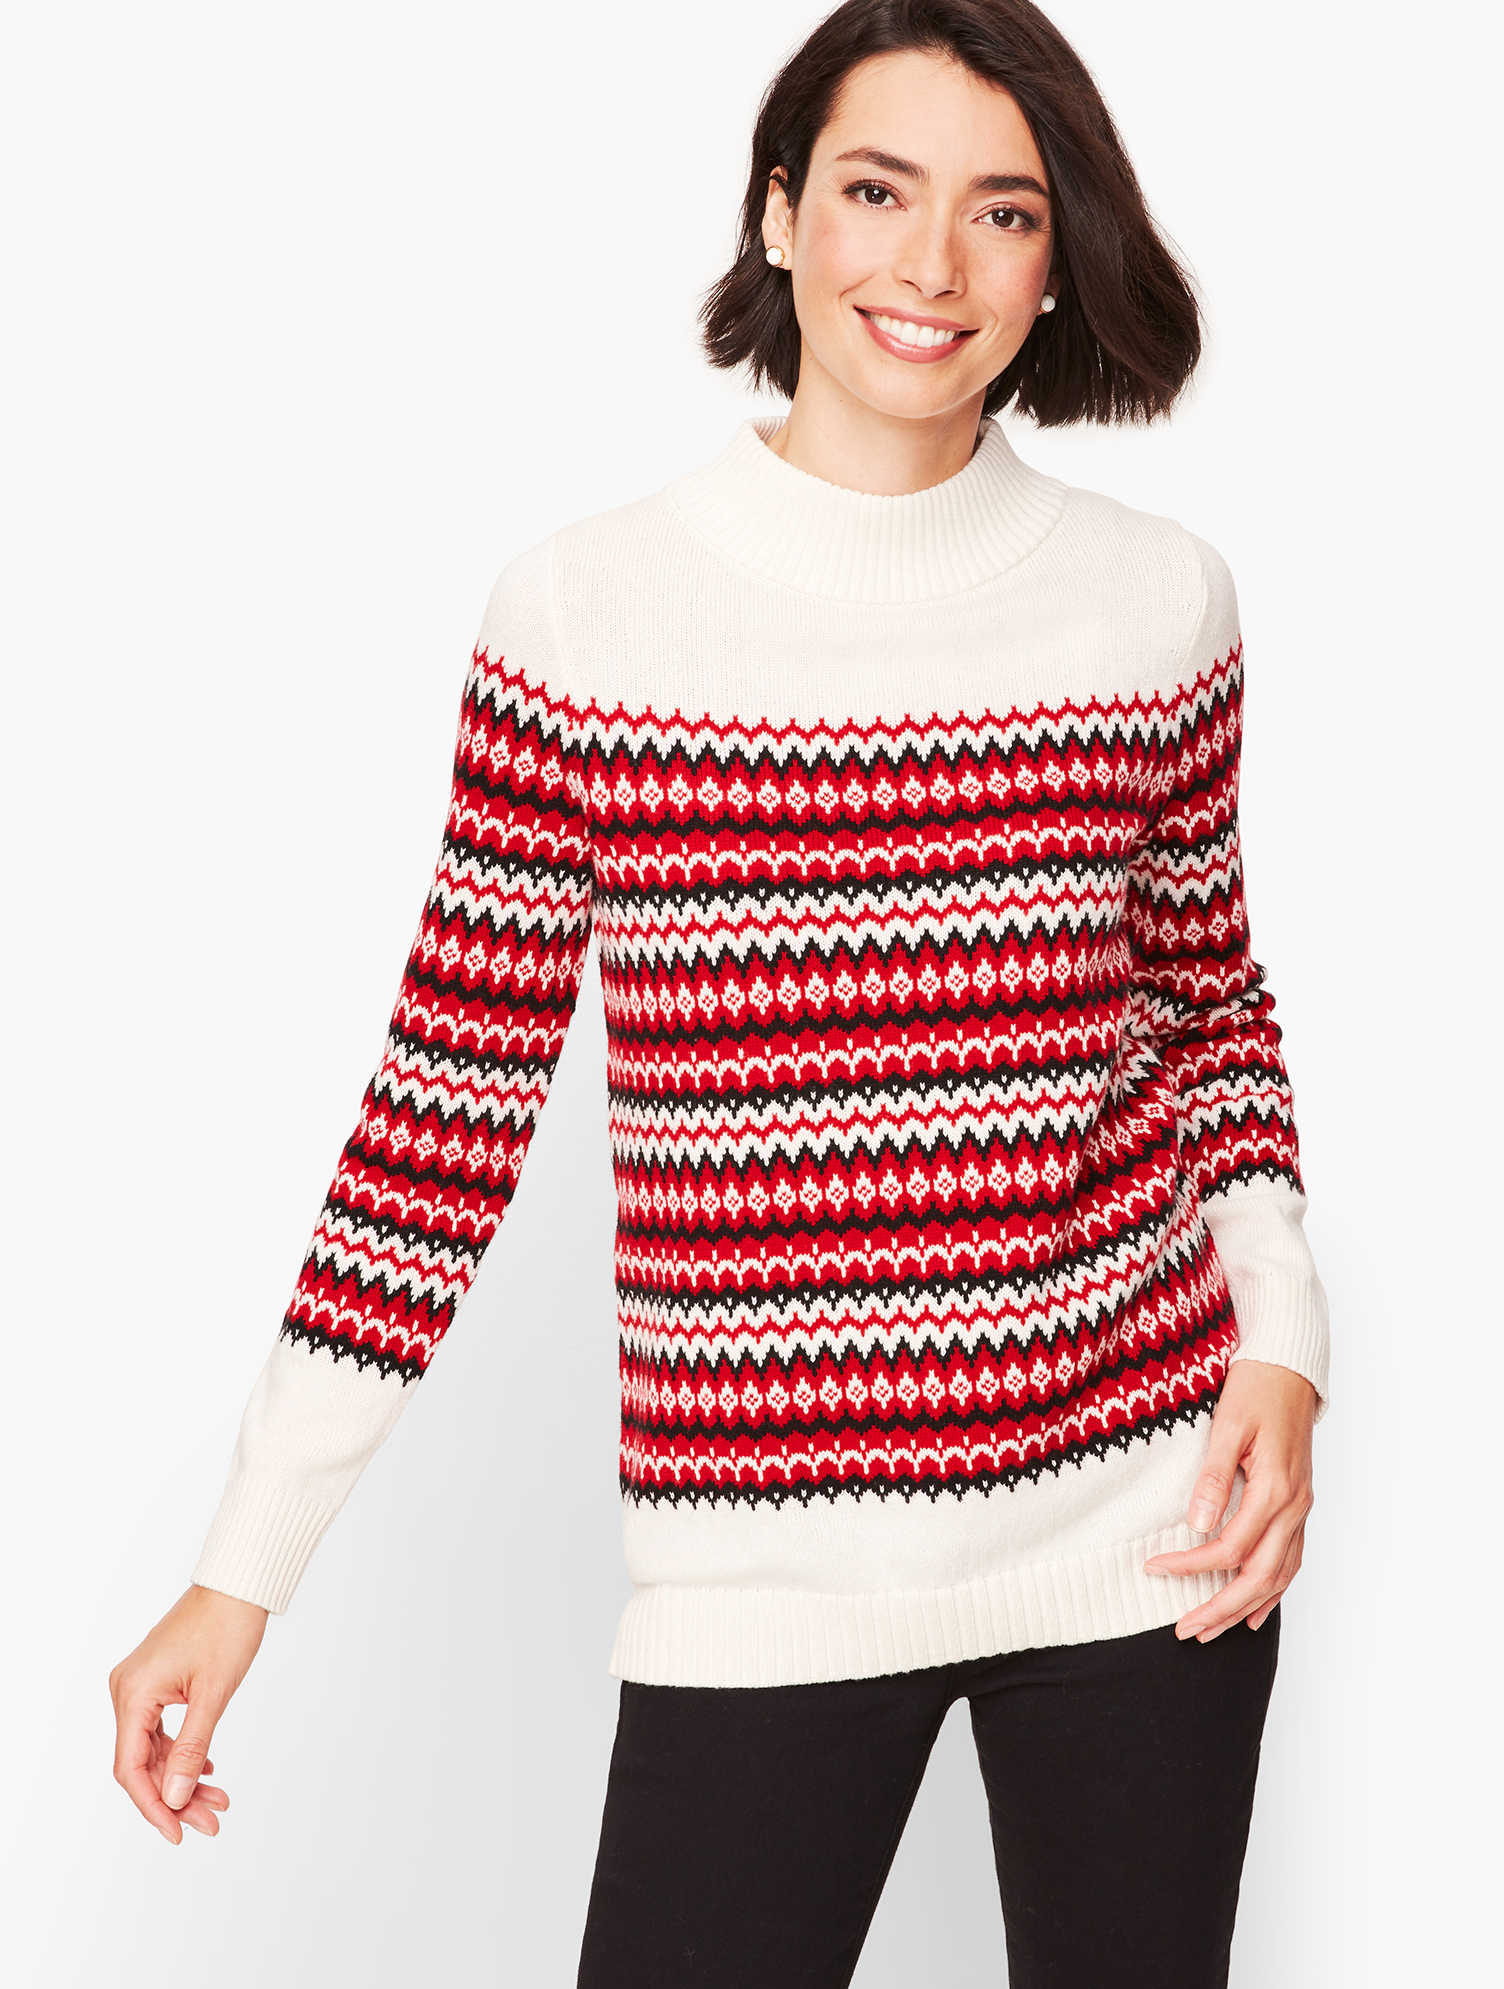 Ladies' Colorful 1920s Sweaters and Cardigans History Chalet Fair Isle Sweater - IvoryRed - XL Talbots $38.99 AT vintagedancer.com